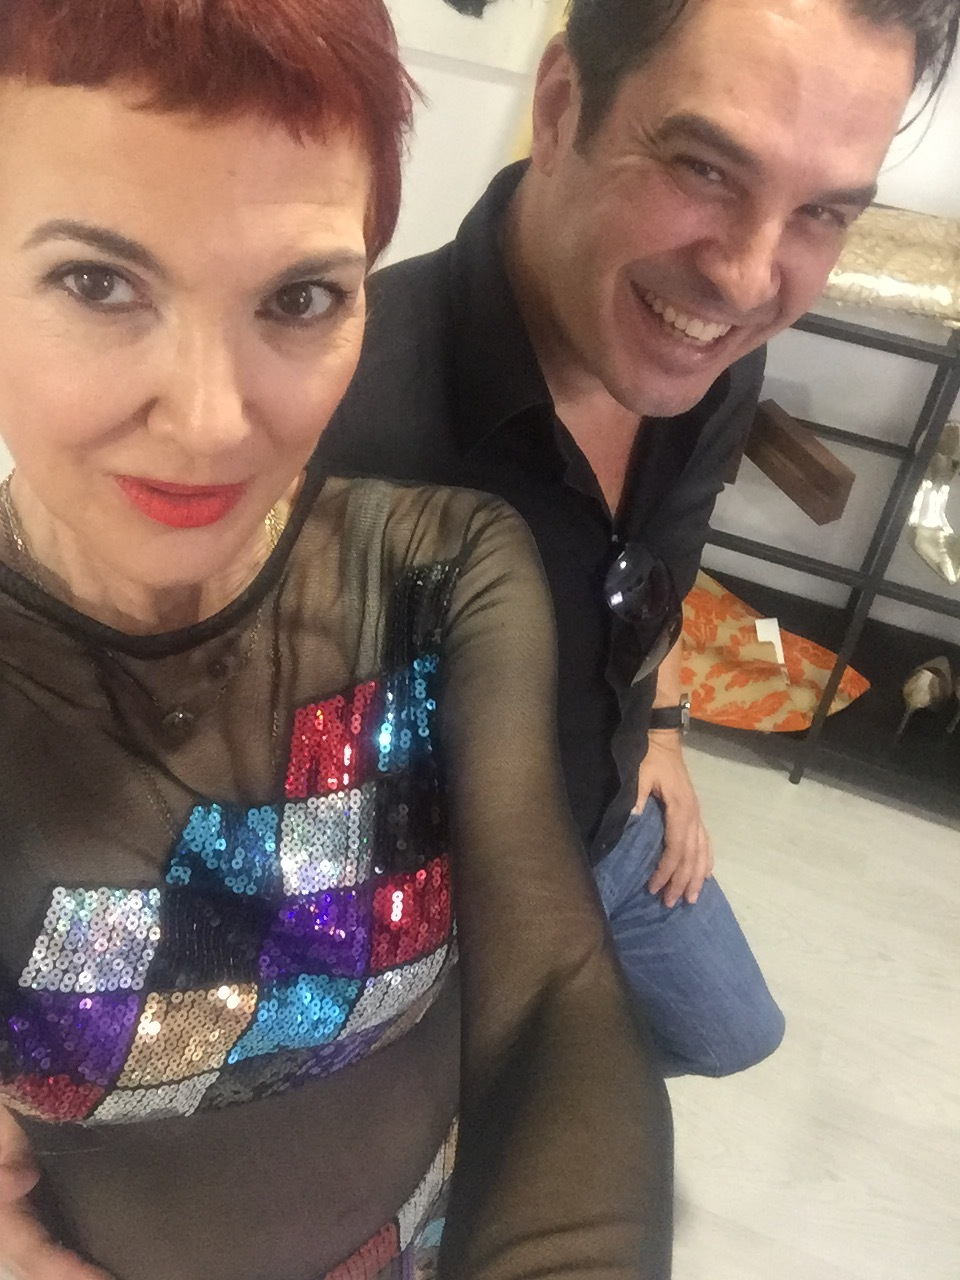 Pedro Palmas and me trying on one of his Party dresses